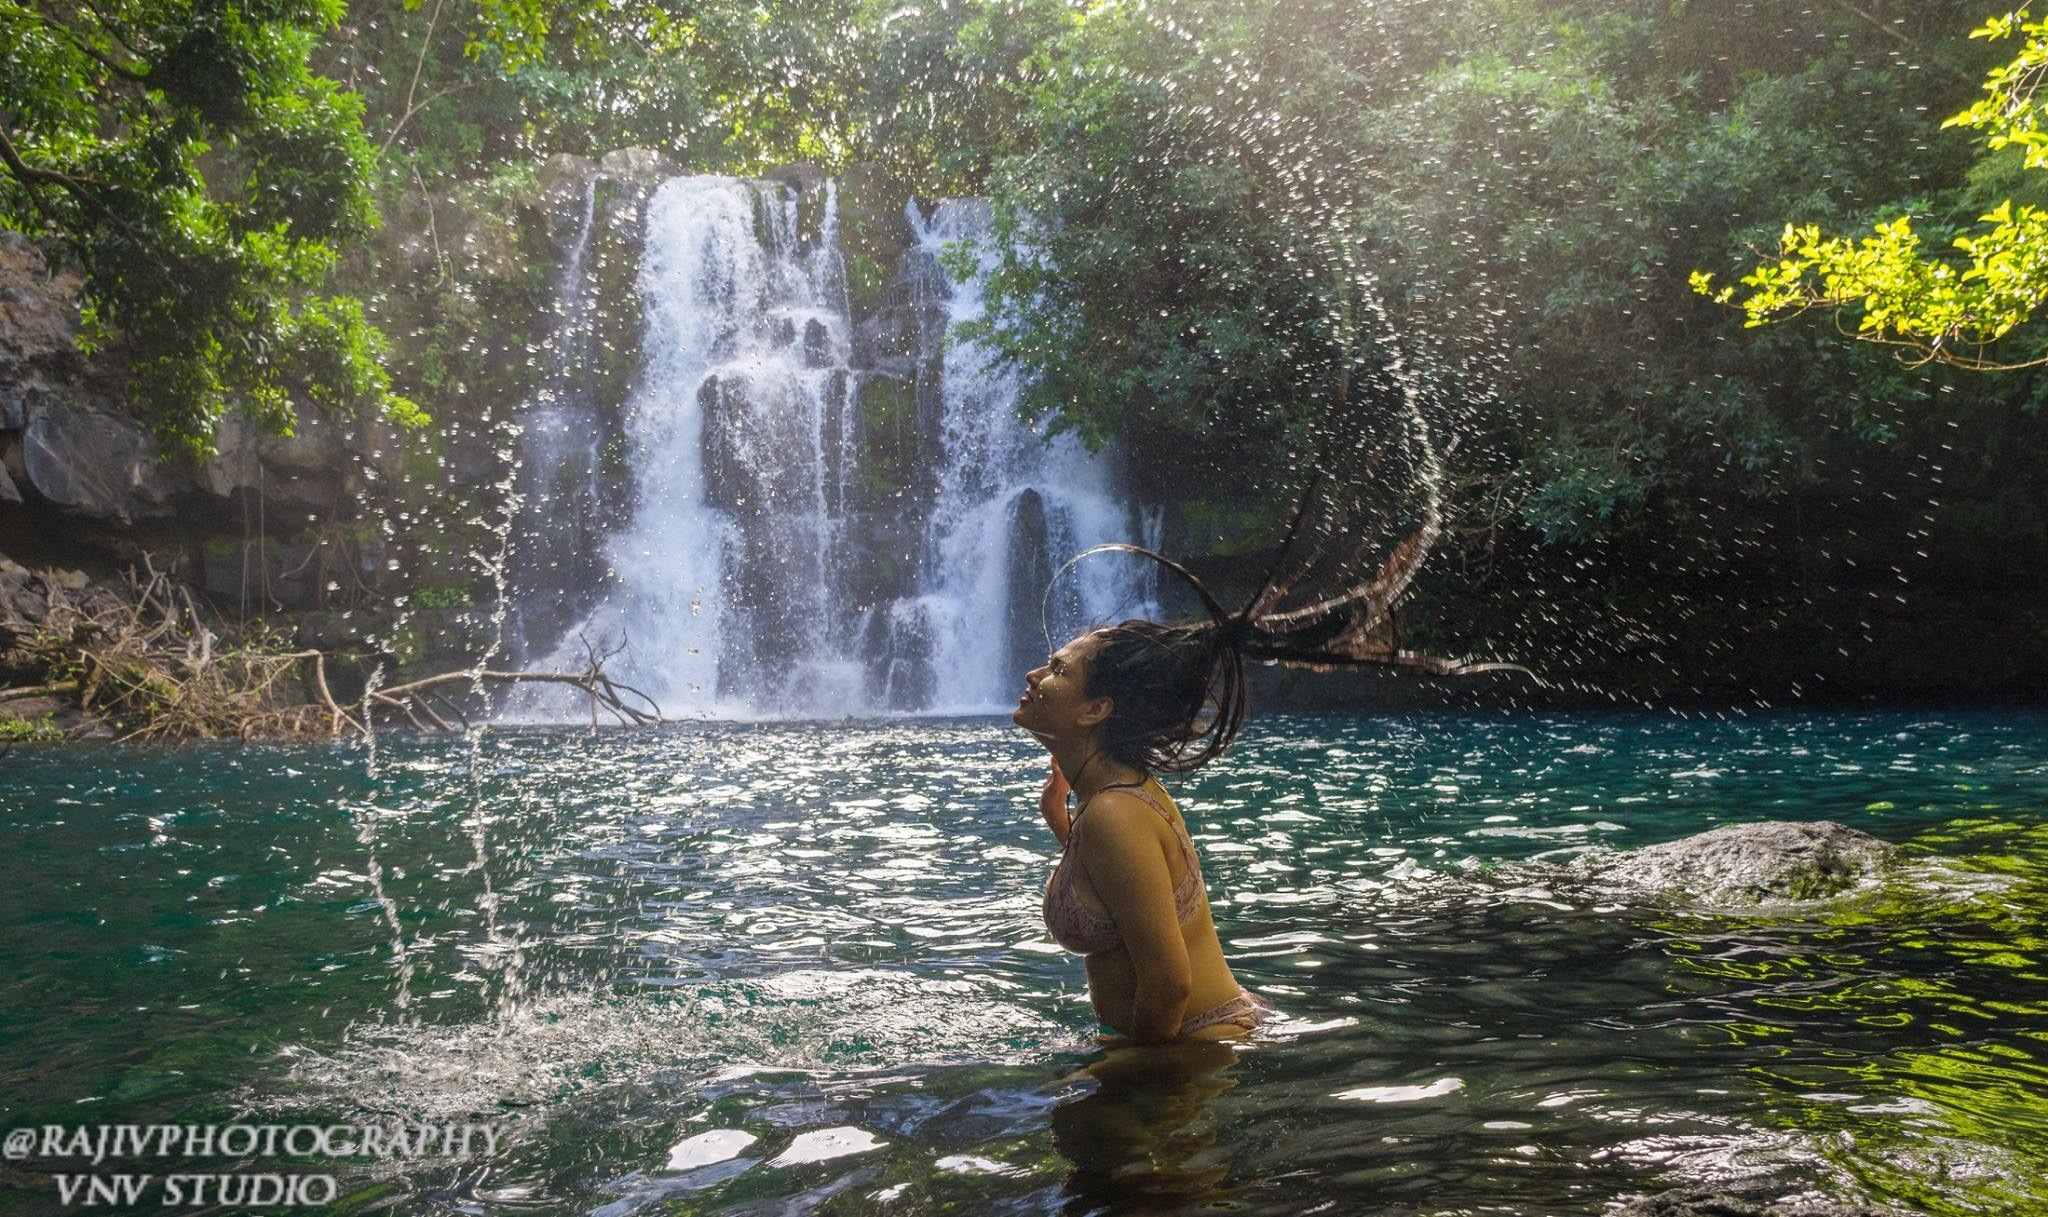 Go Wild For A While by RajivPhotography